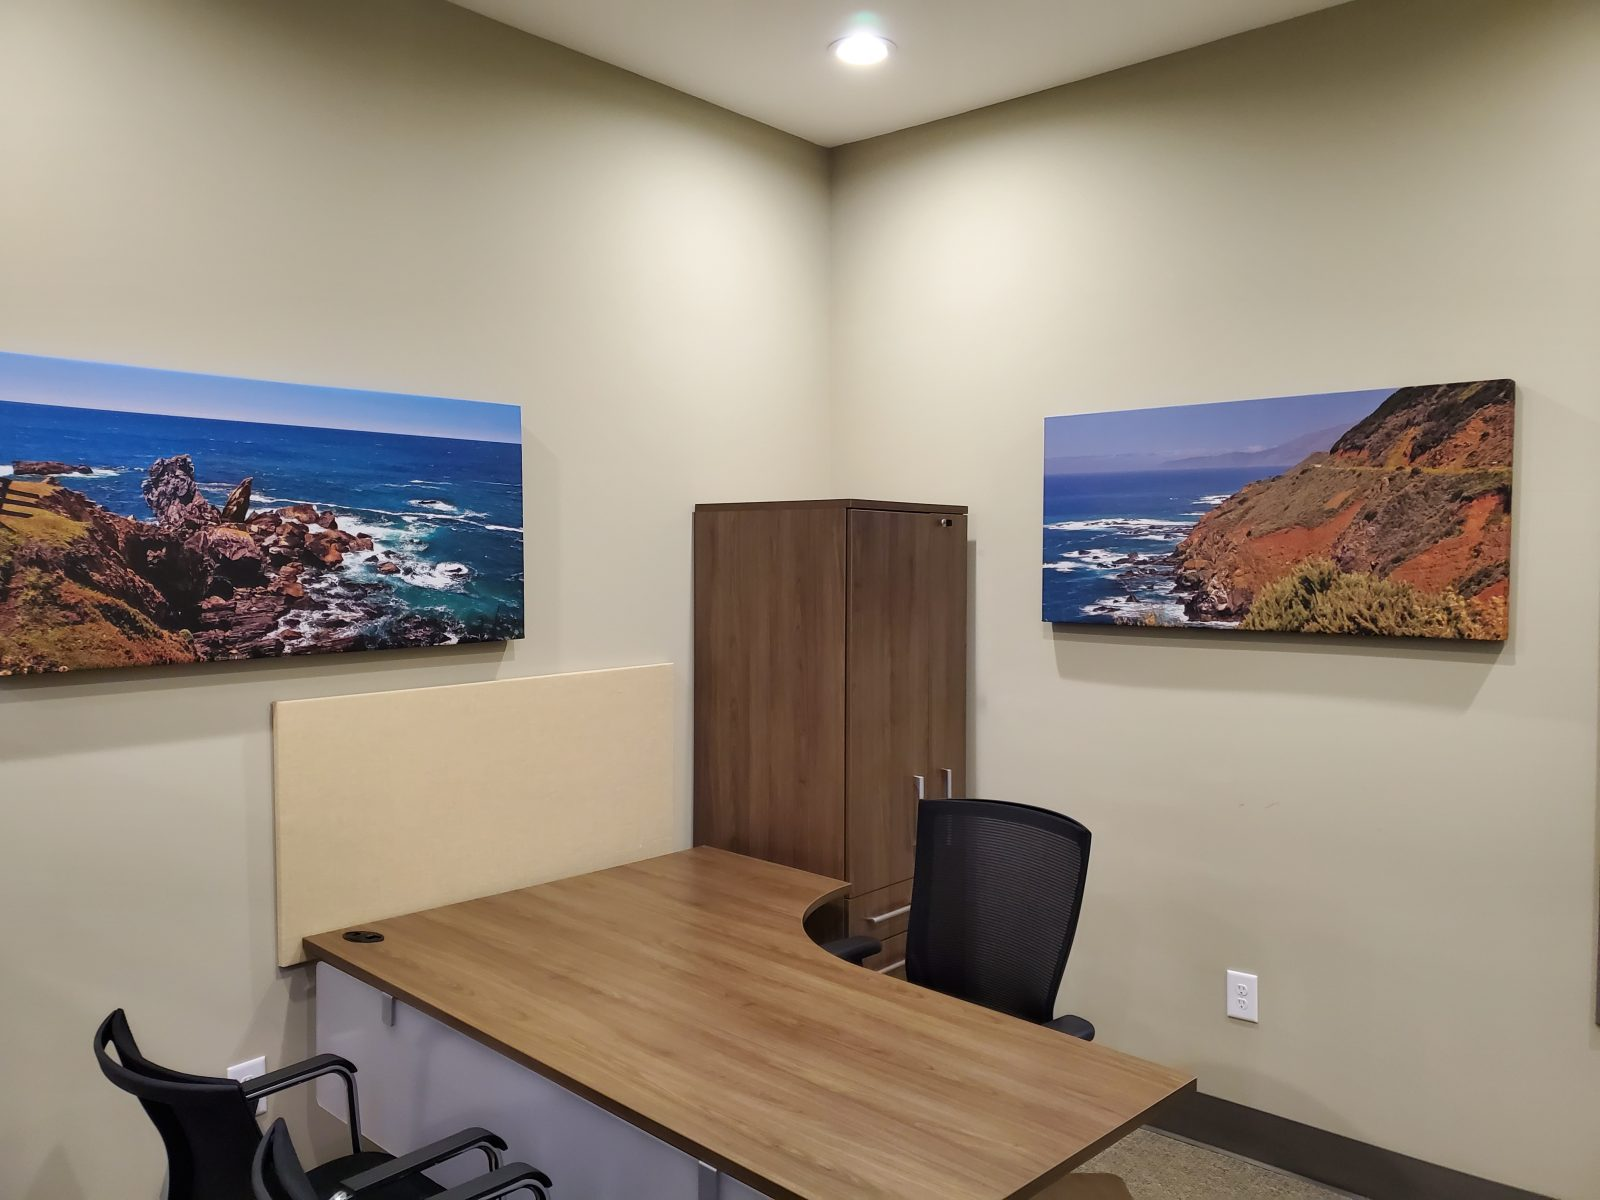 Acoustic Art Panels in office with landscape images of cliffs